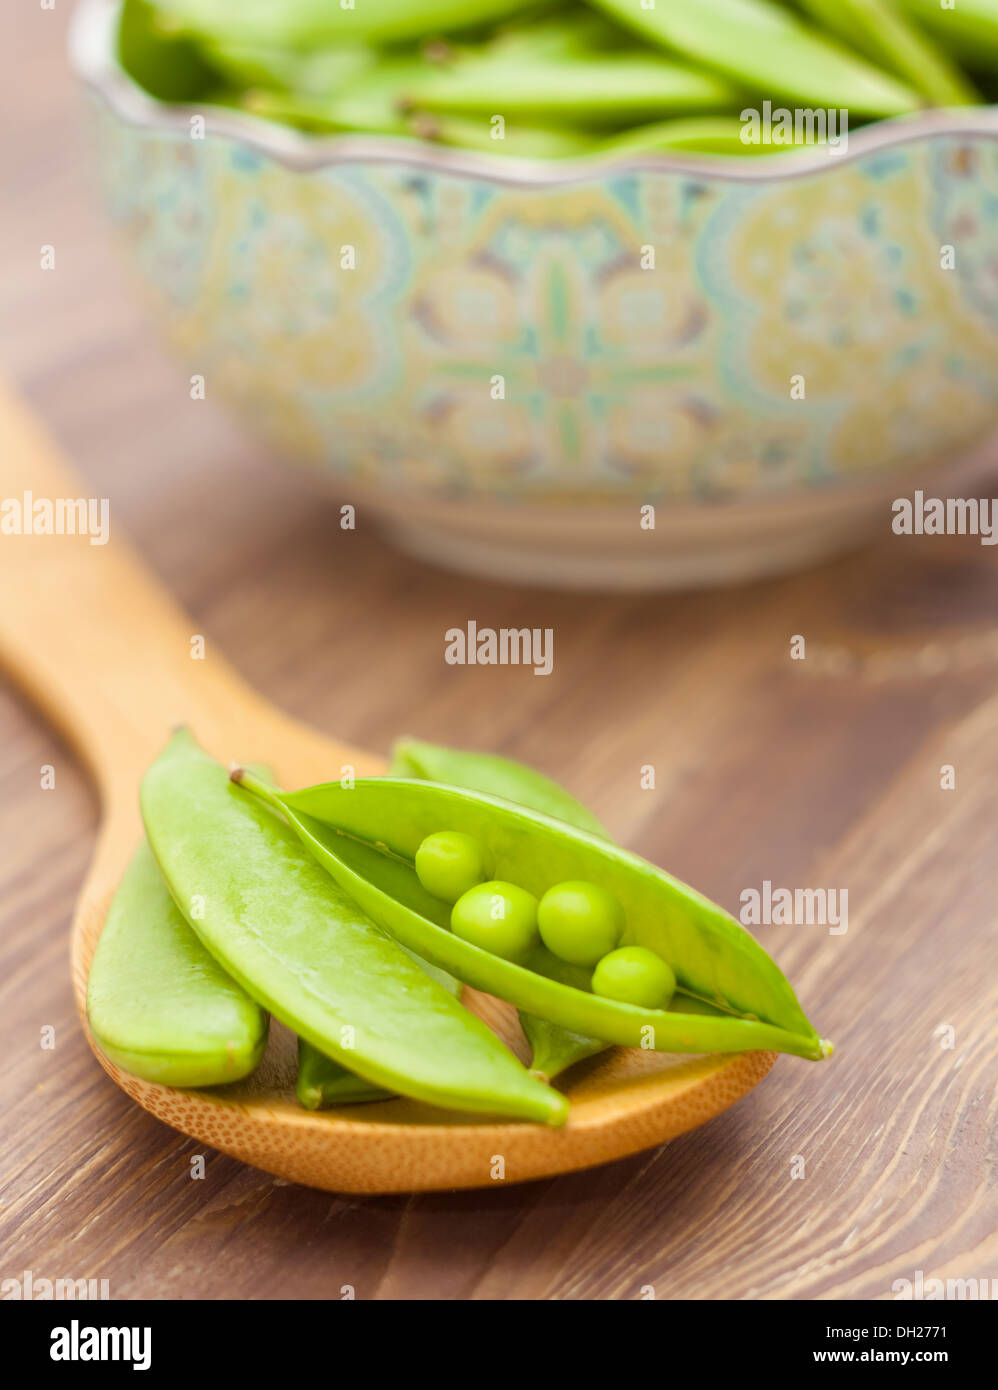 Pea pods on spoon, wooden background - Stock Image